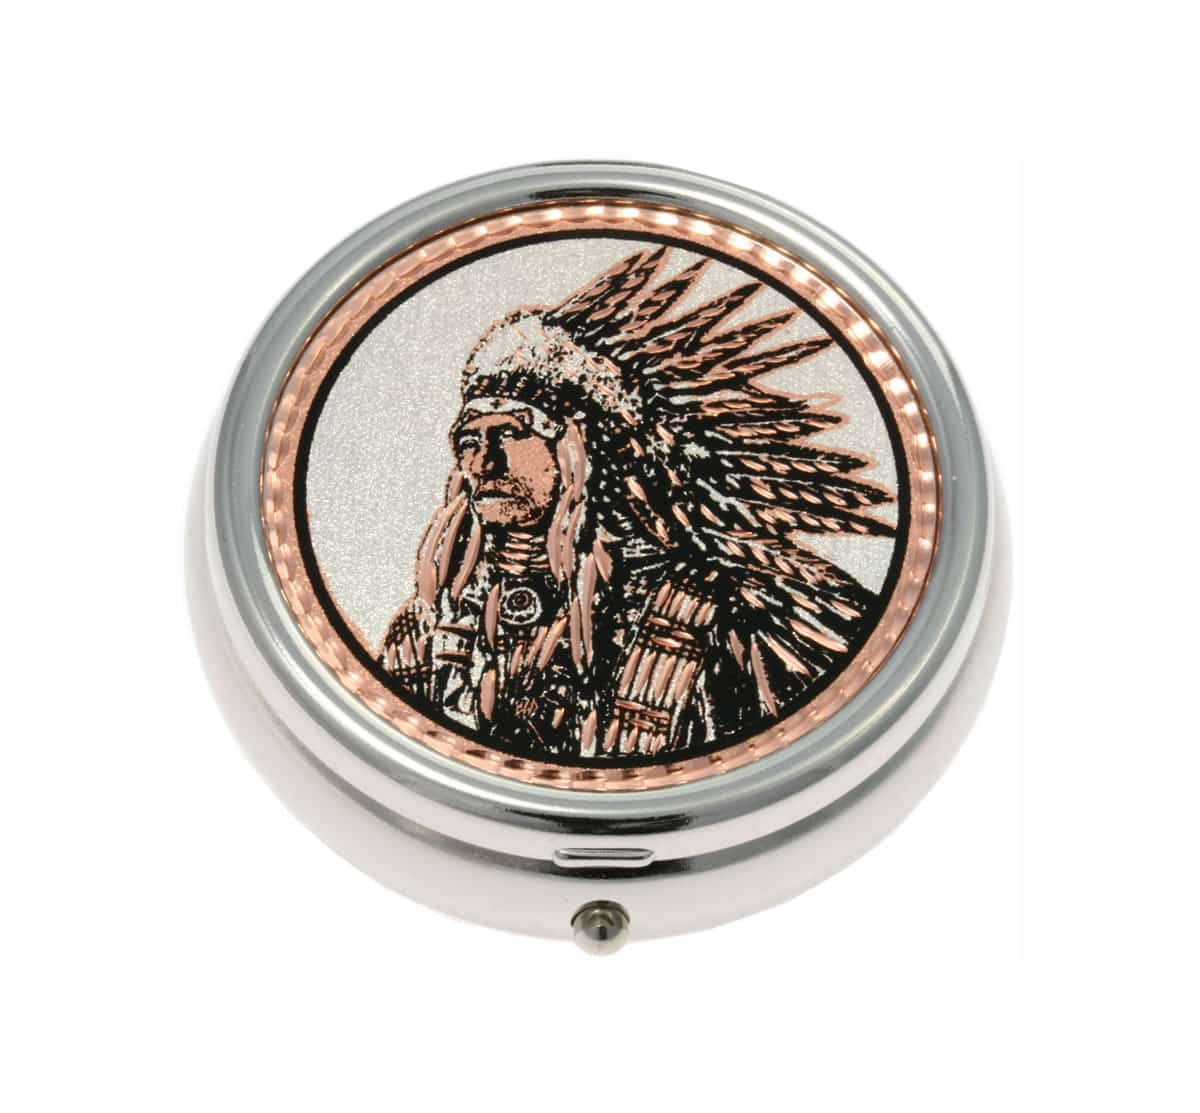 Buy Precious American Indian Chief Pill Boxes, Special Handmade Gifts for All Occasions